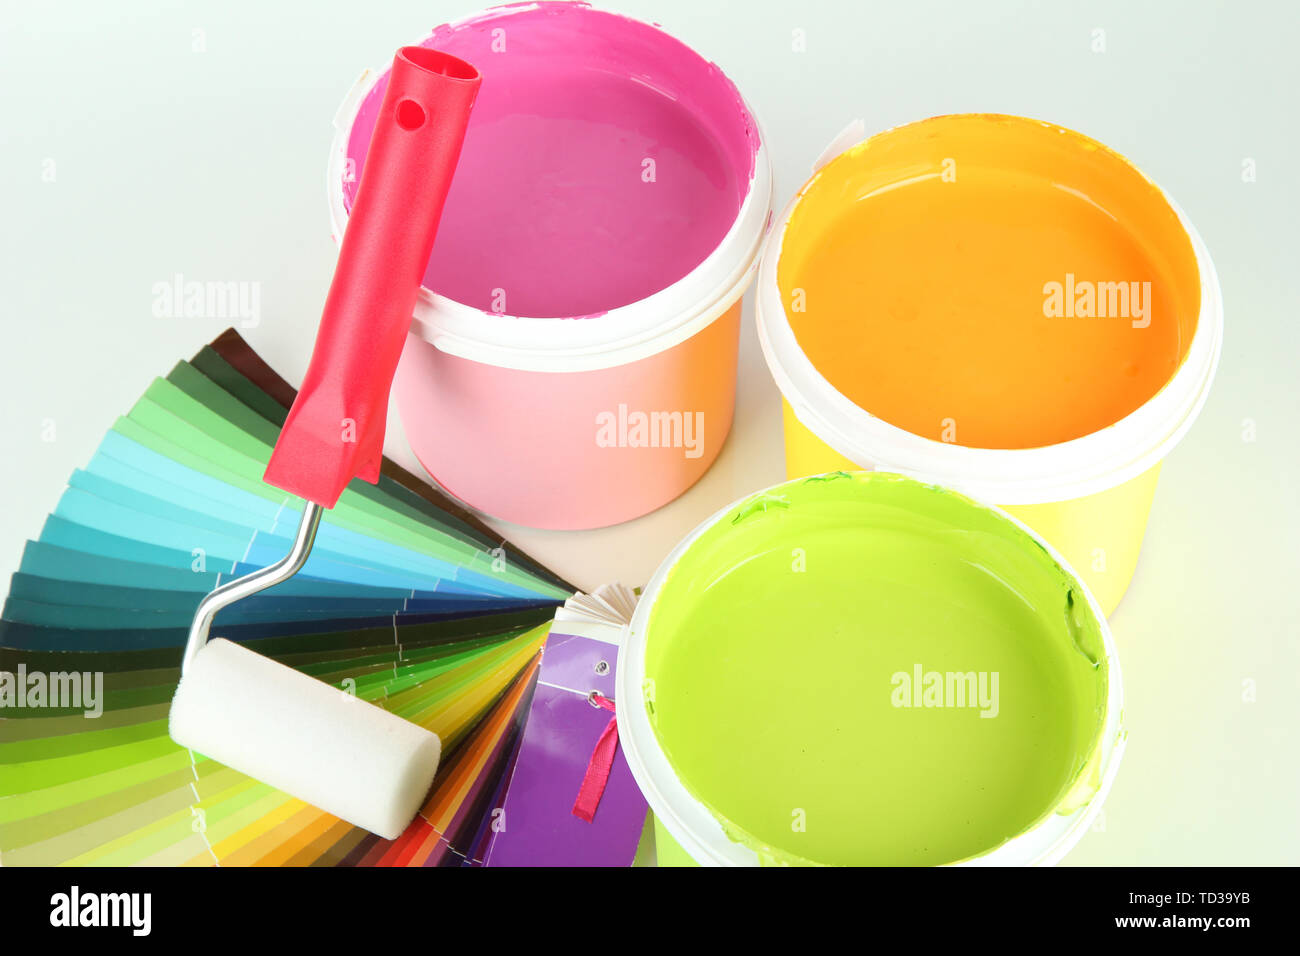 Set for painting: paint pots, paint-roller and palette of colors isolated on white - Stock Image